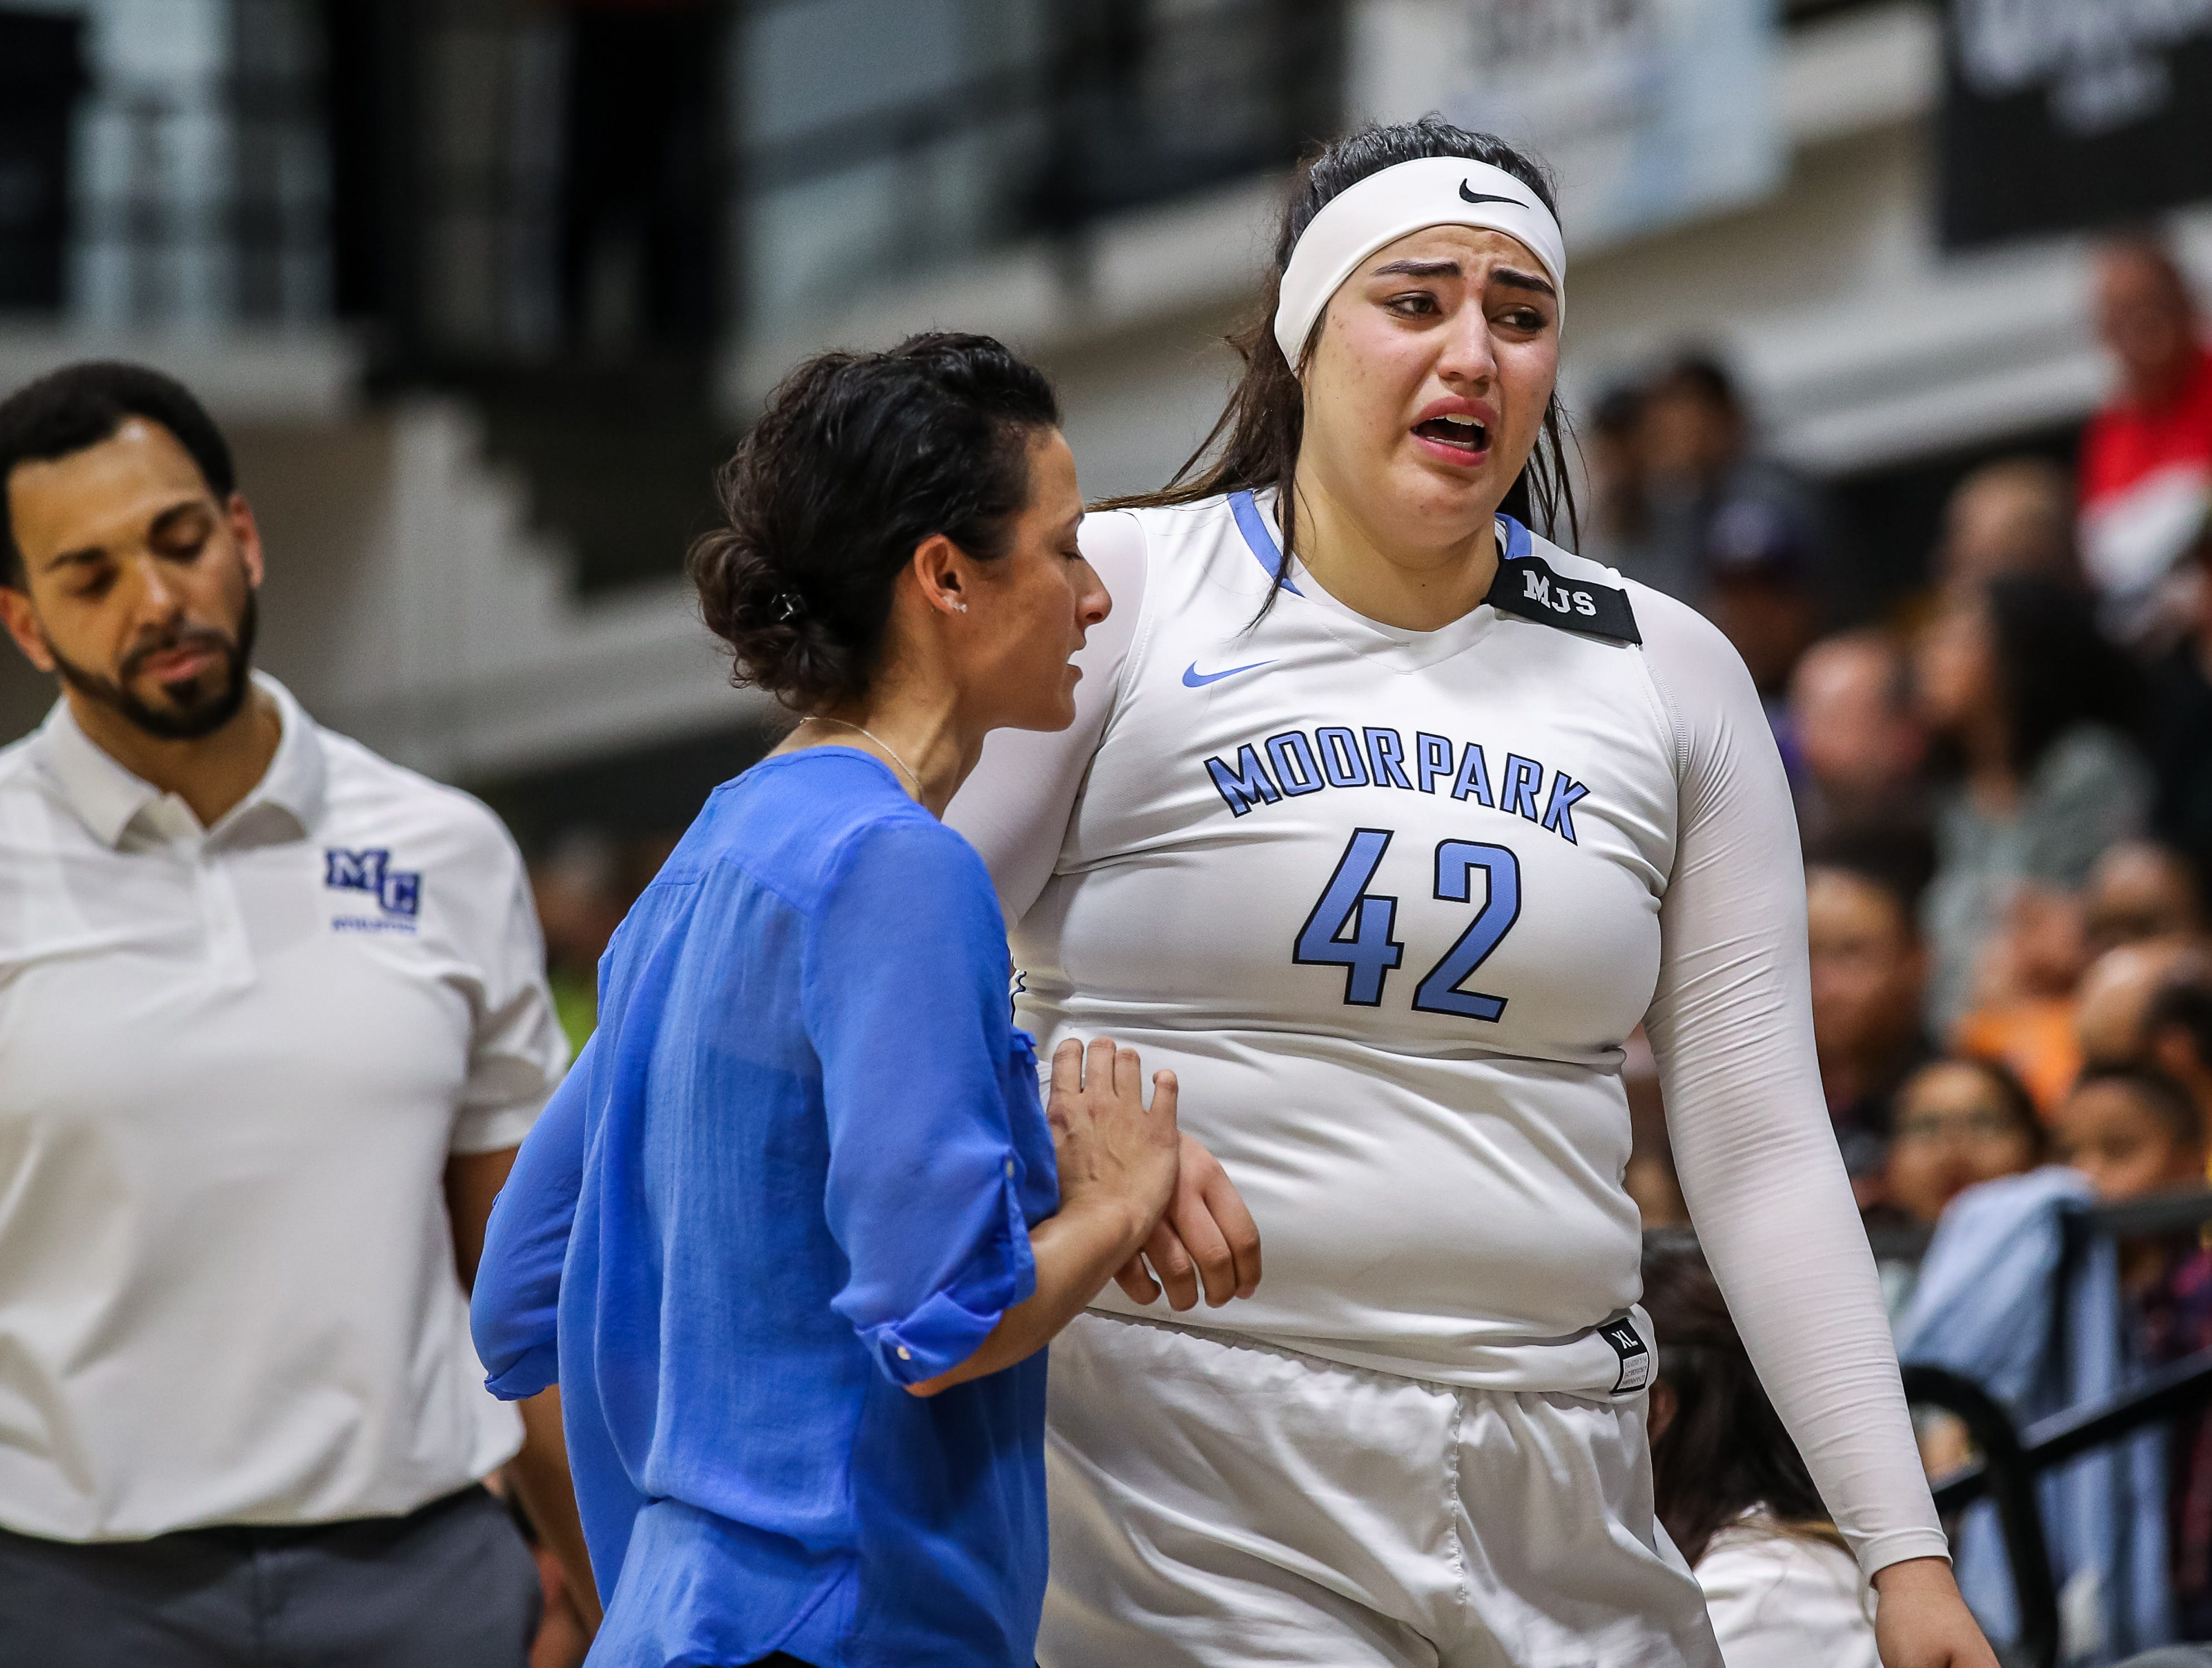 A distraught Barbara Rangel leaves the game after injuring her knee in the third quarter against Diablo Valley College during the CCCAA state championship game at Ventura College on Sunday. Moorpark lost, 68-61.